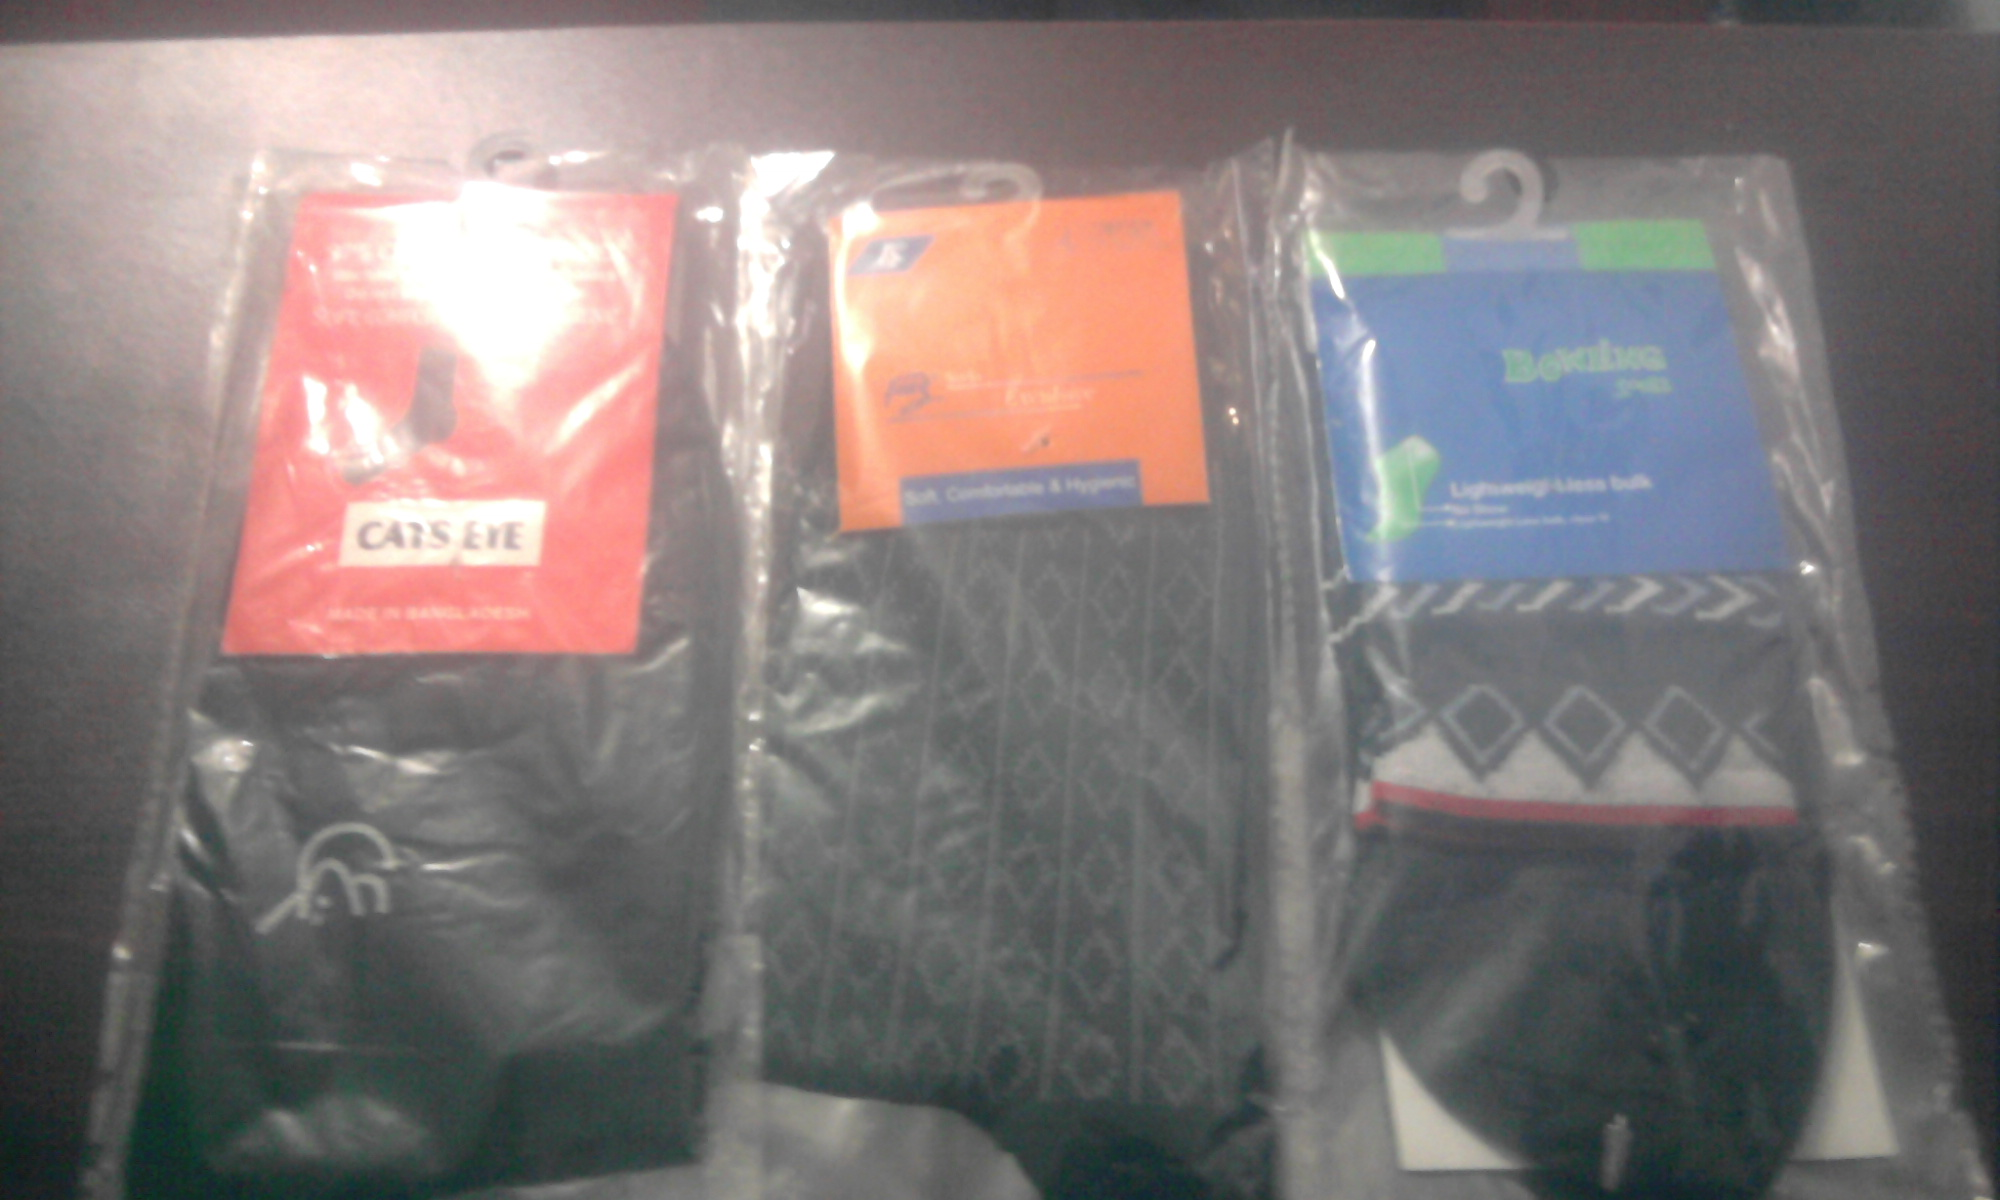 Different Colur Socks Nice and stylice nice Brand also | ClickBD large image 0